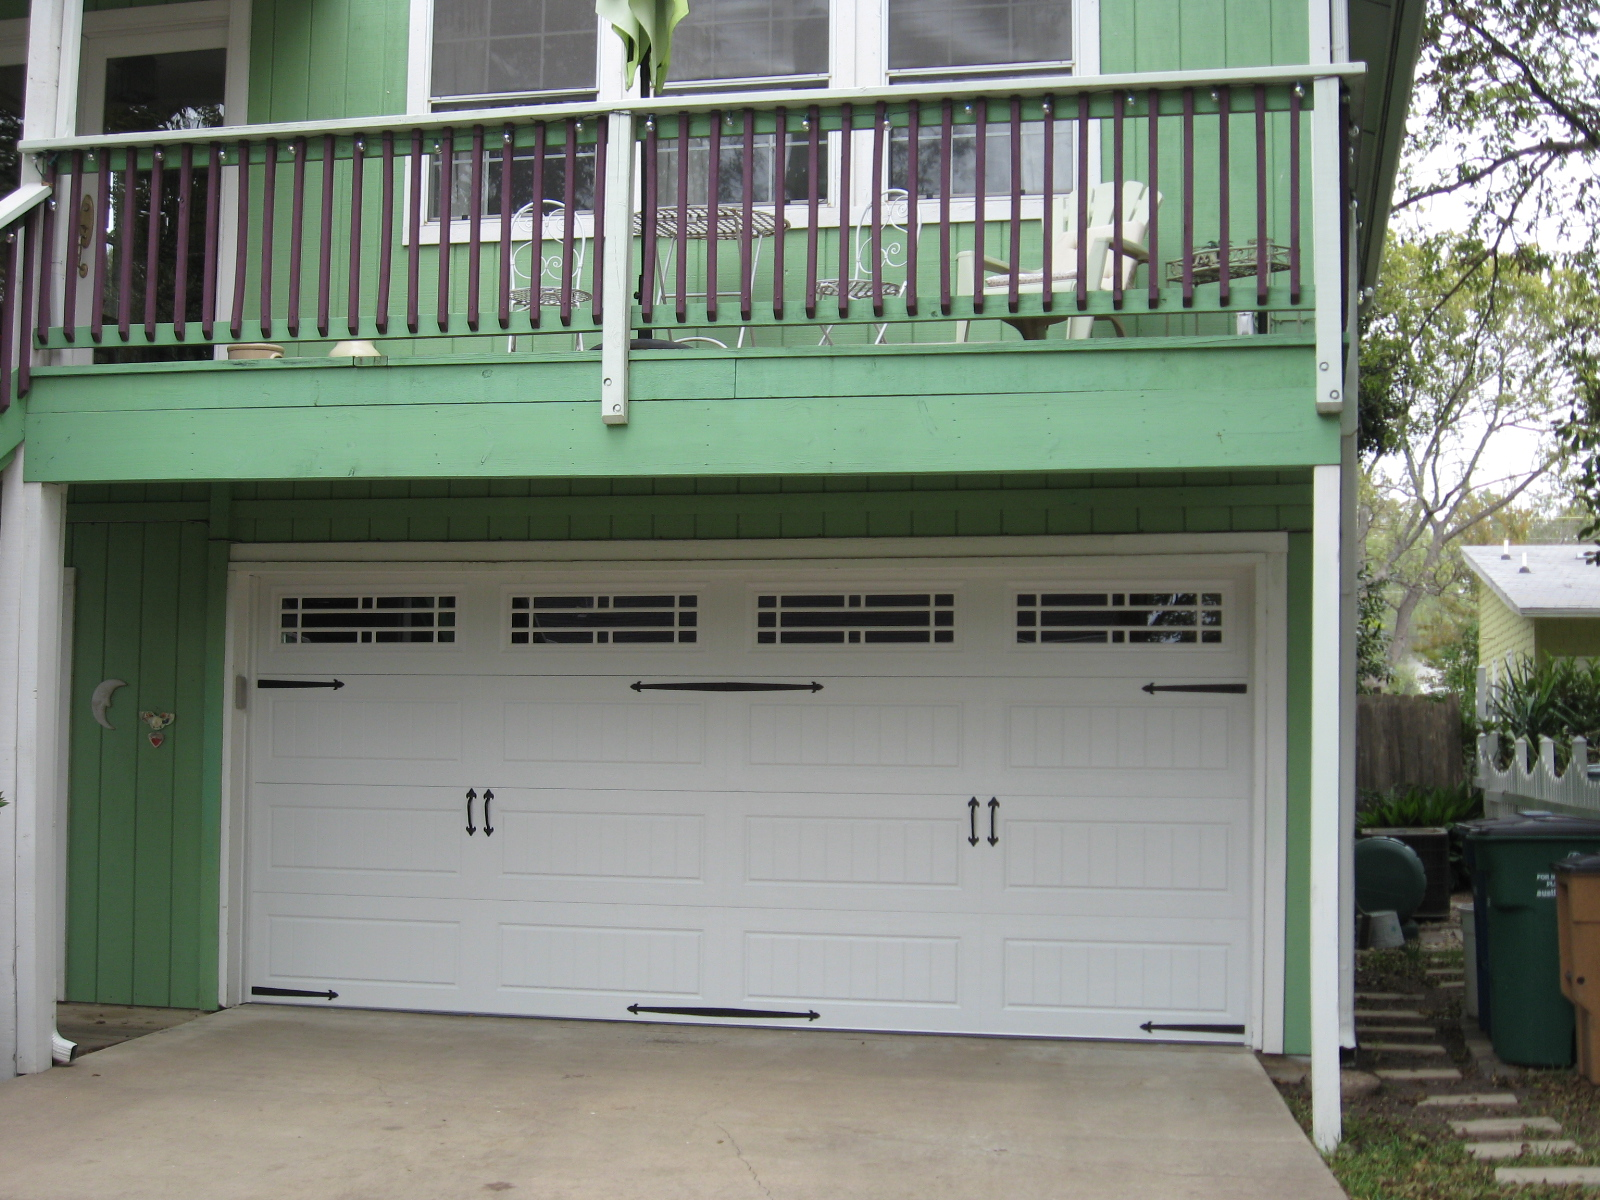 Commercial garage door opener on a 16 feet wide garage for Cedar park overhead garage doors